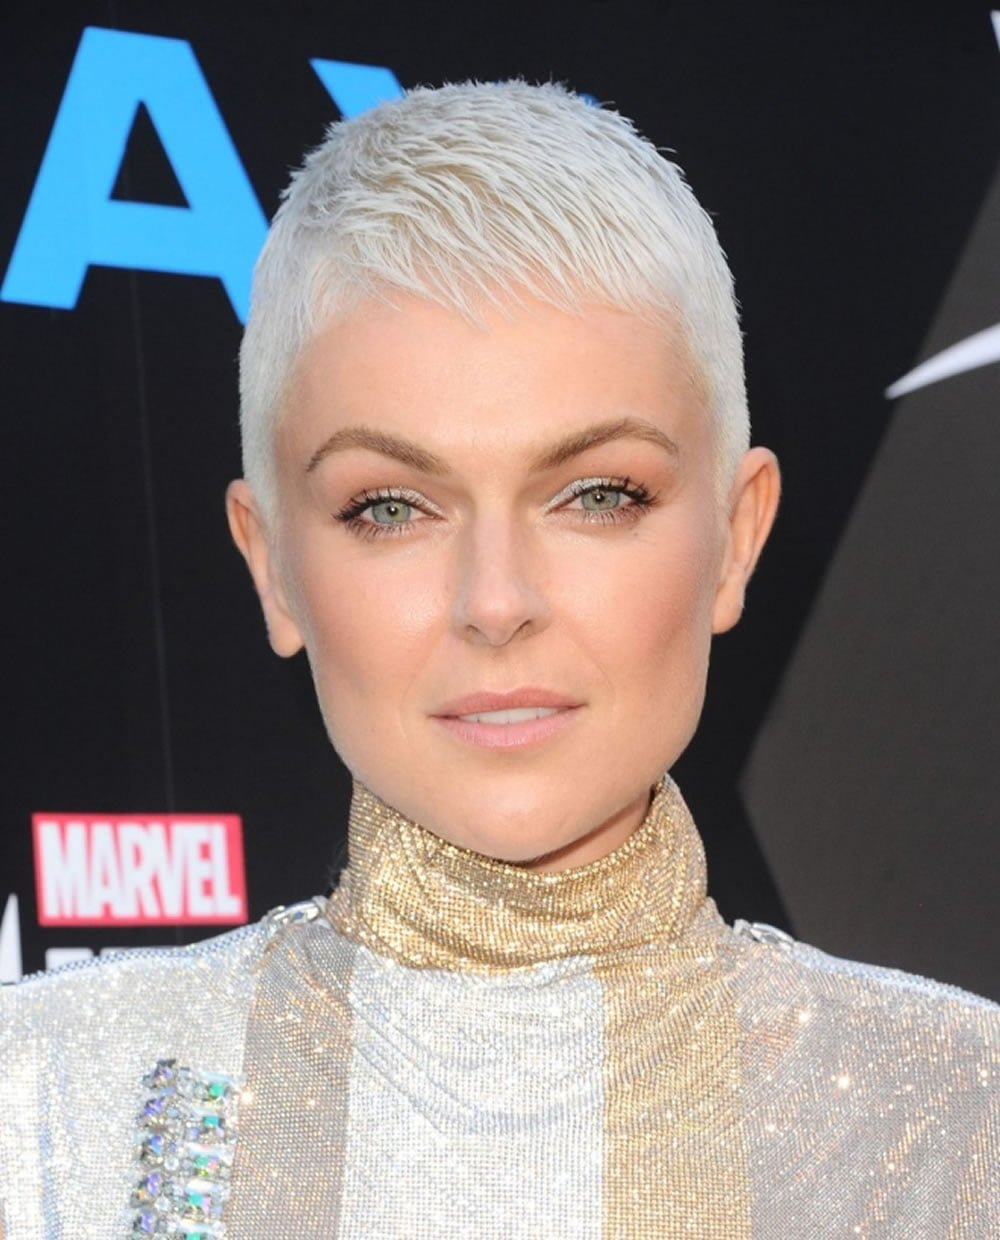 Pixie Cut 2019 Short Haircut Inspirations You Absolutely Need To